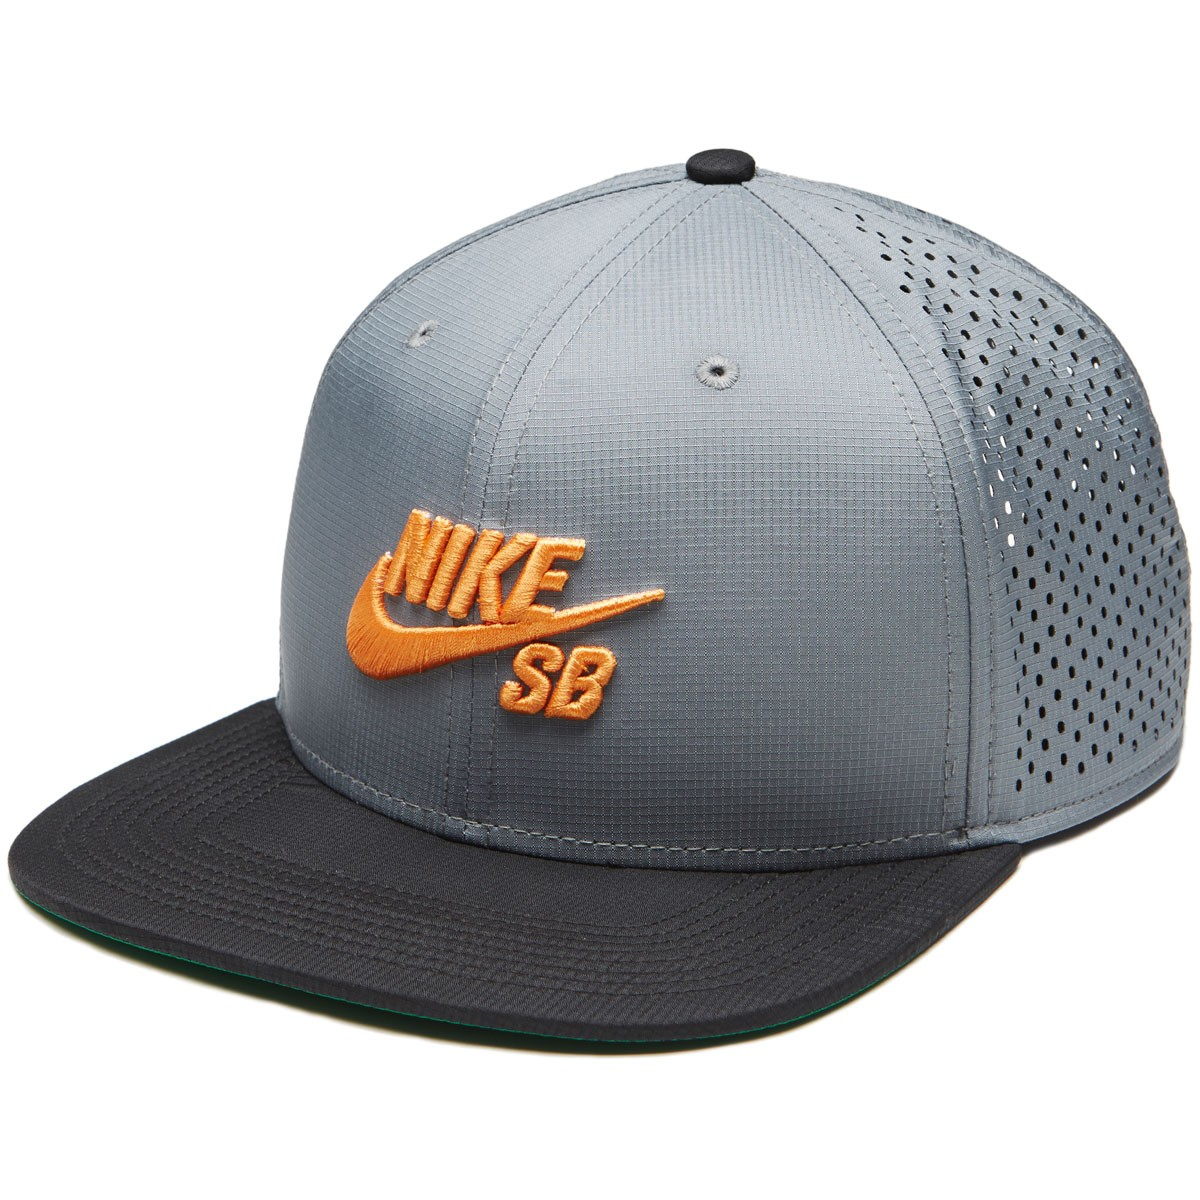 Nike SB Aero Pro Hat - Cool Grey/Black/Circuit Orange